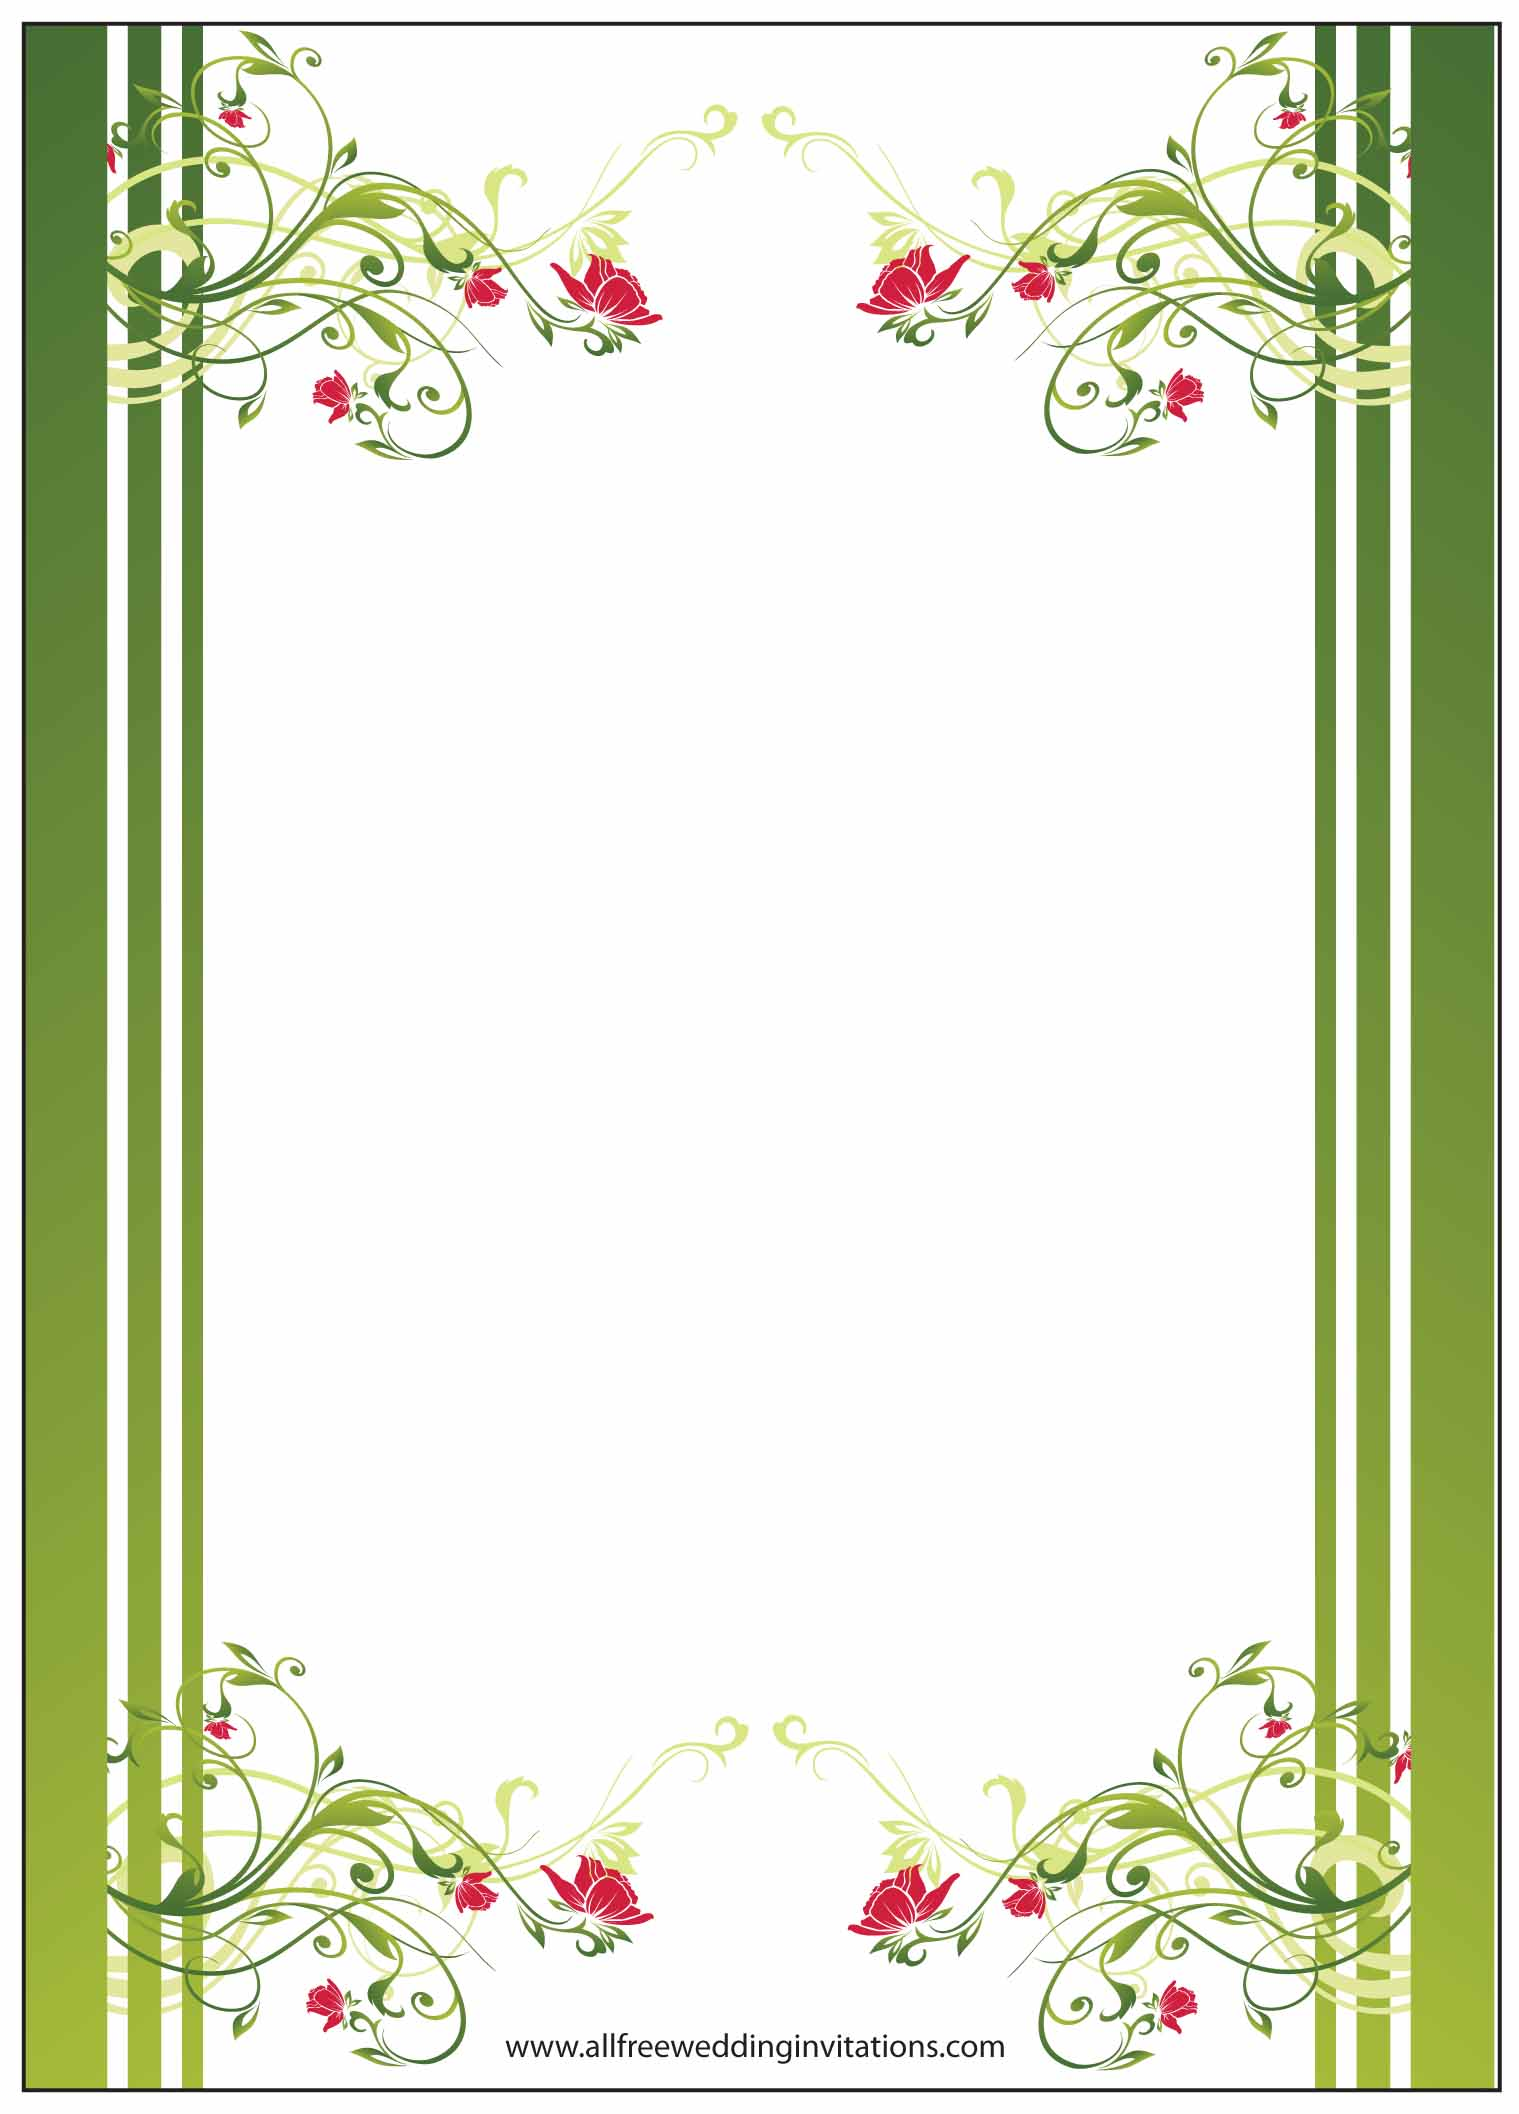 Free Wedding Borders For Invitations Mini Bridal